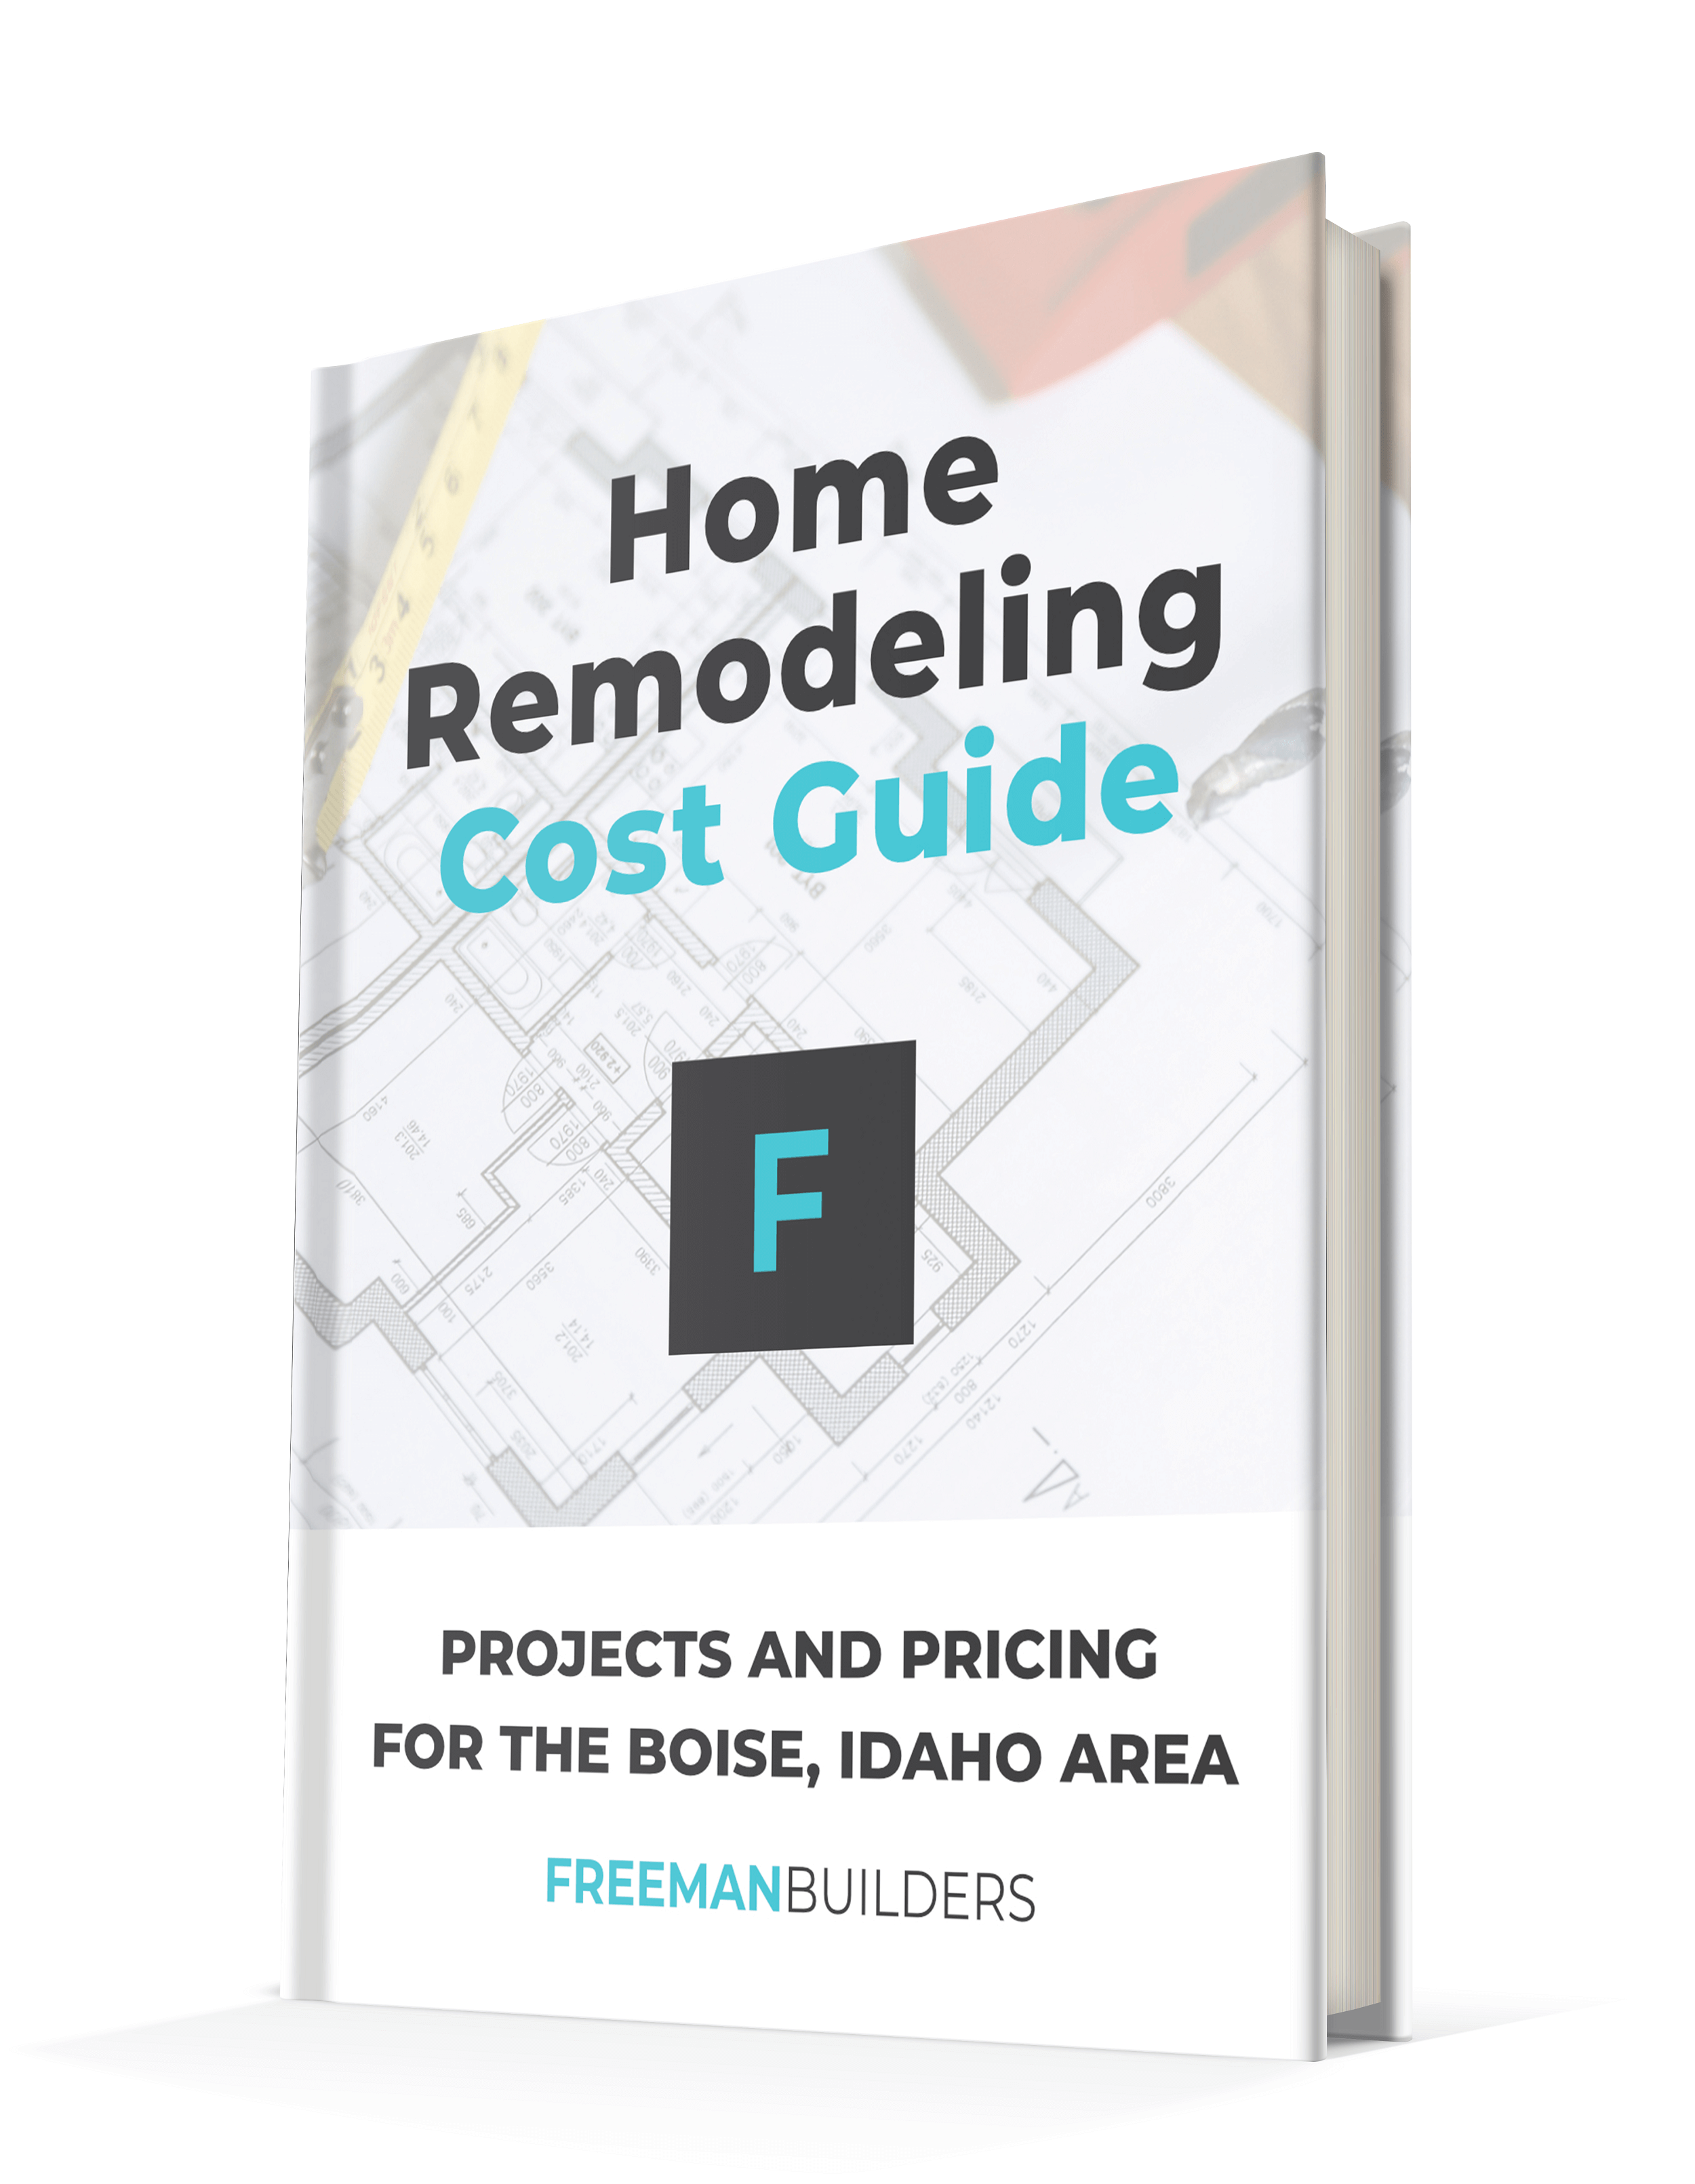 Home Remodeling Cost Guide